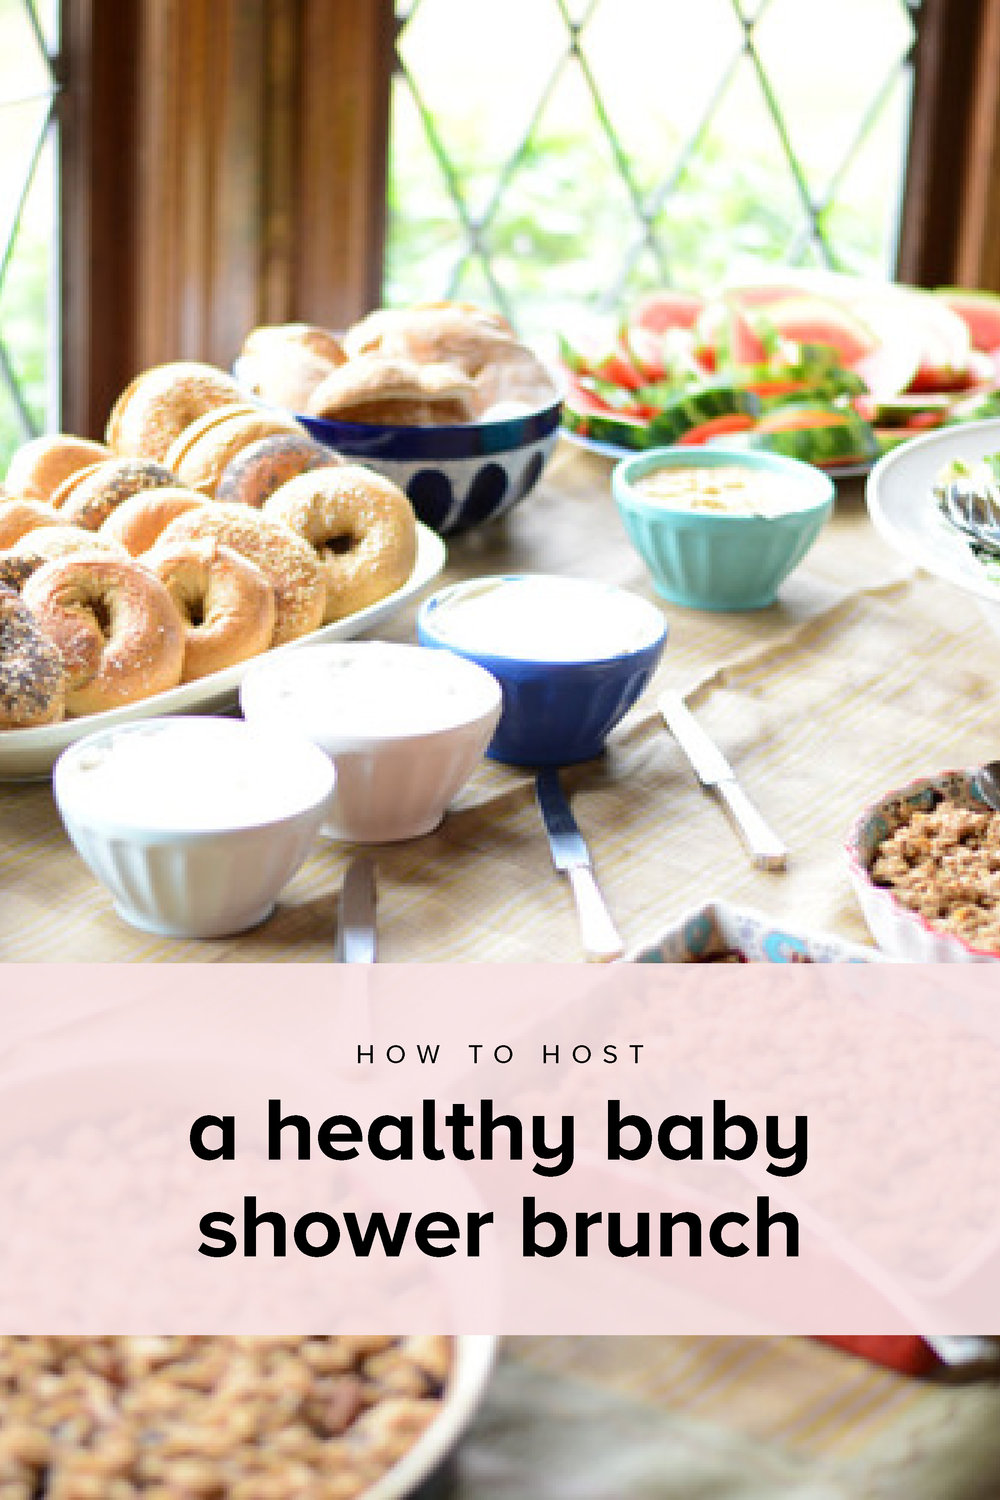 Tips and recipes for hosting a healthy baby shower brunch. Gluten-free and dairy-free friendly! #realfoodwholelife #gathering #babyshower #healthy #healthycooking